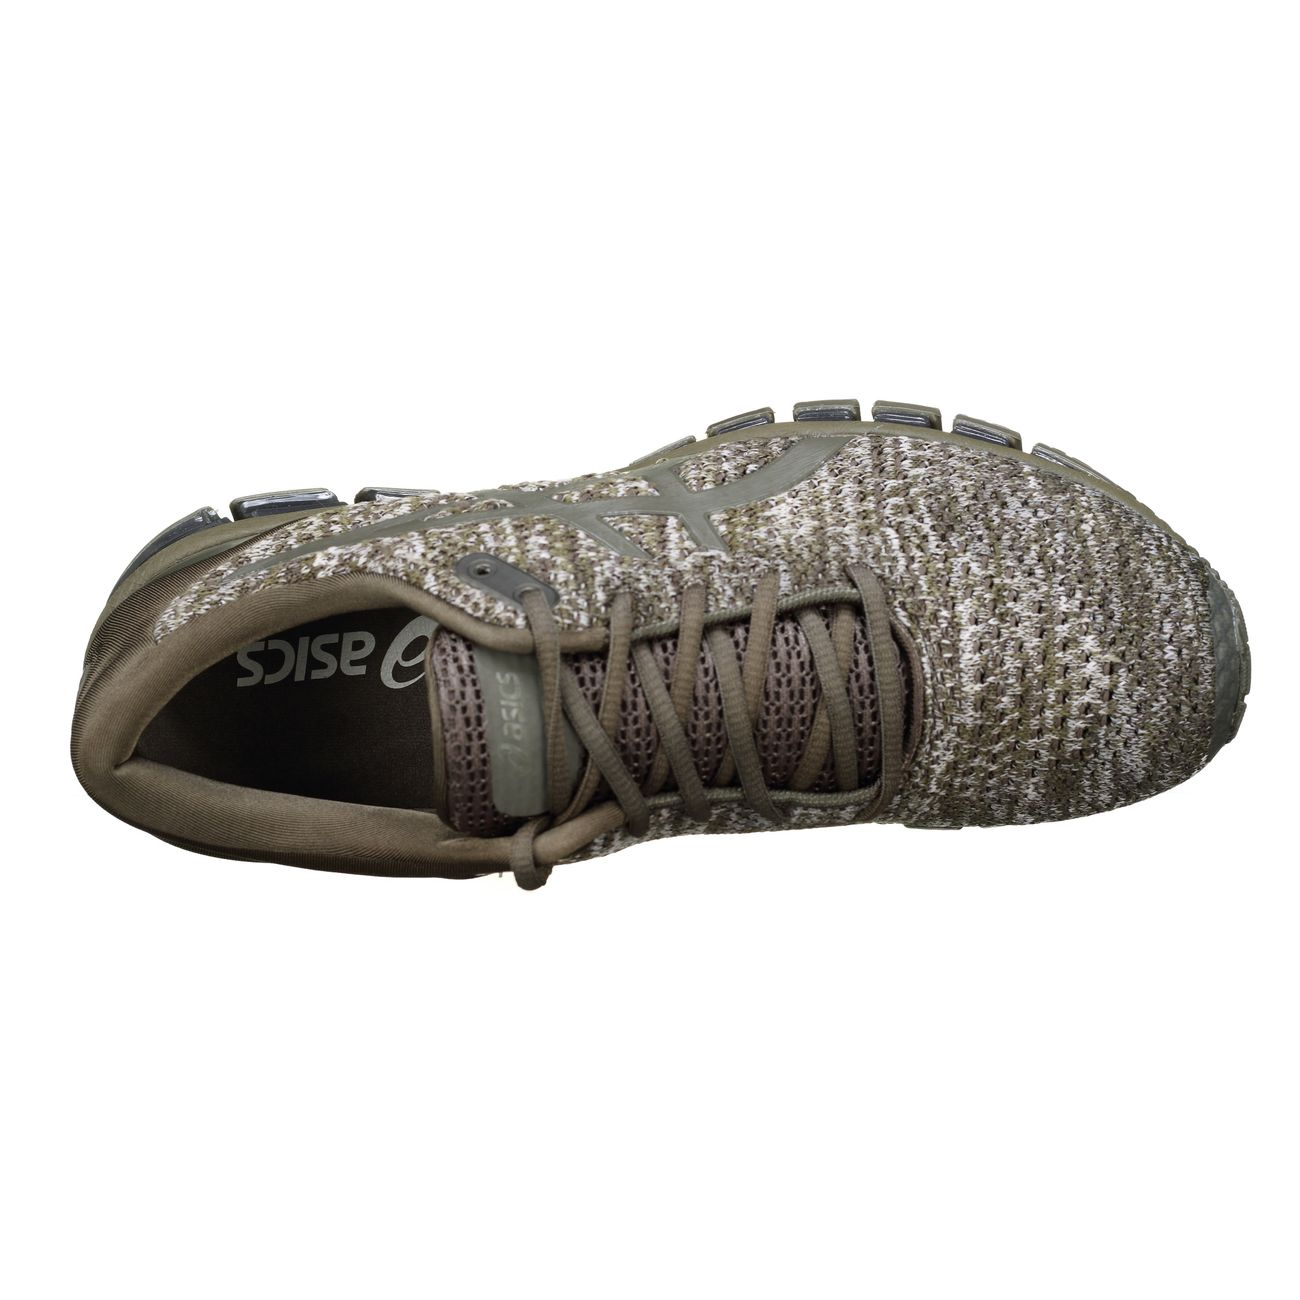 quantum 360 Knit Course 2 Asics Chaussures Pied Homme À Gel m0wv8nNyO